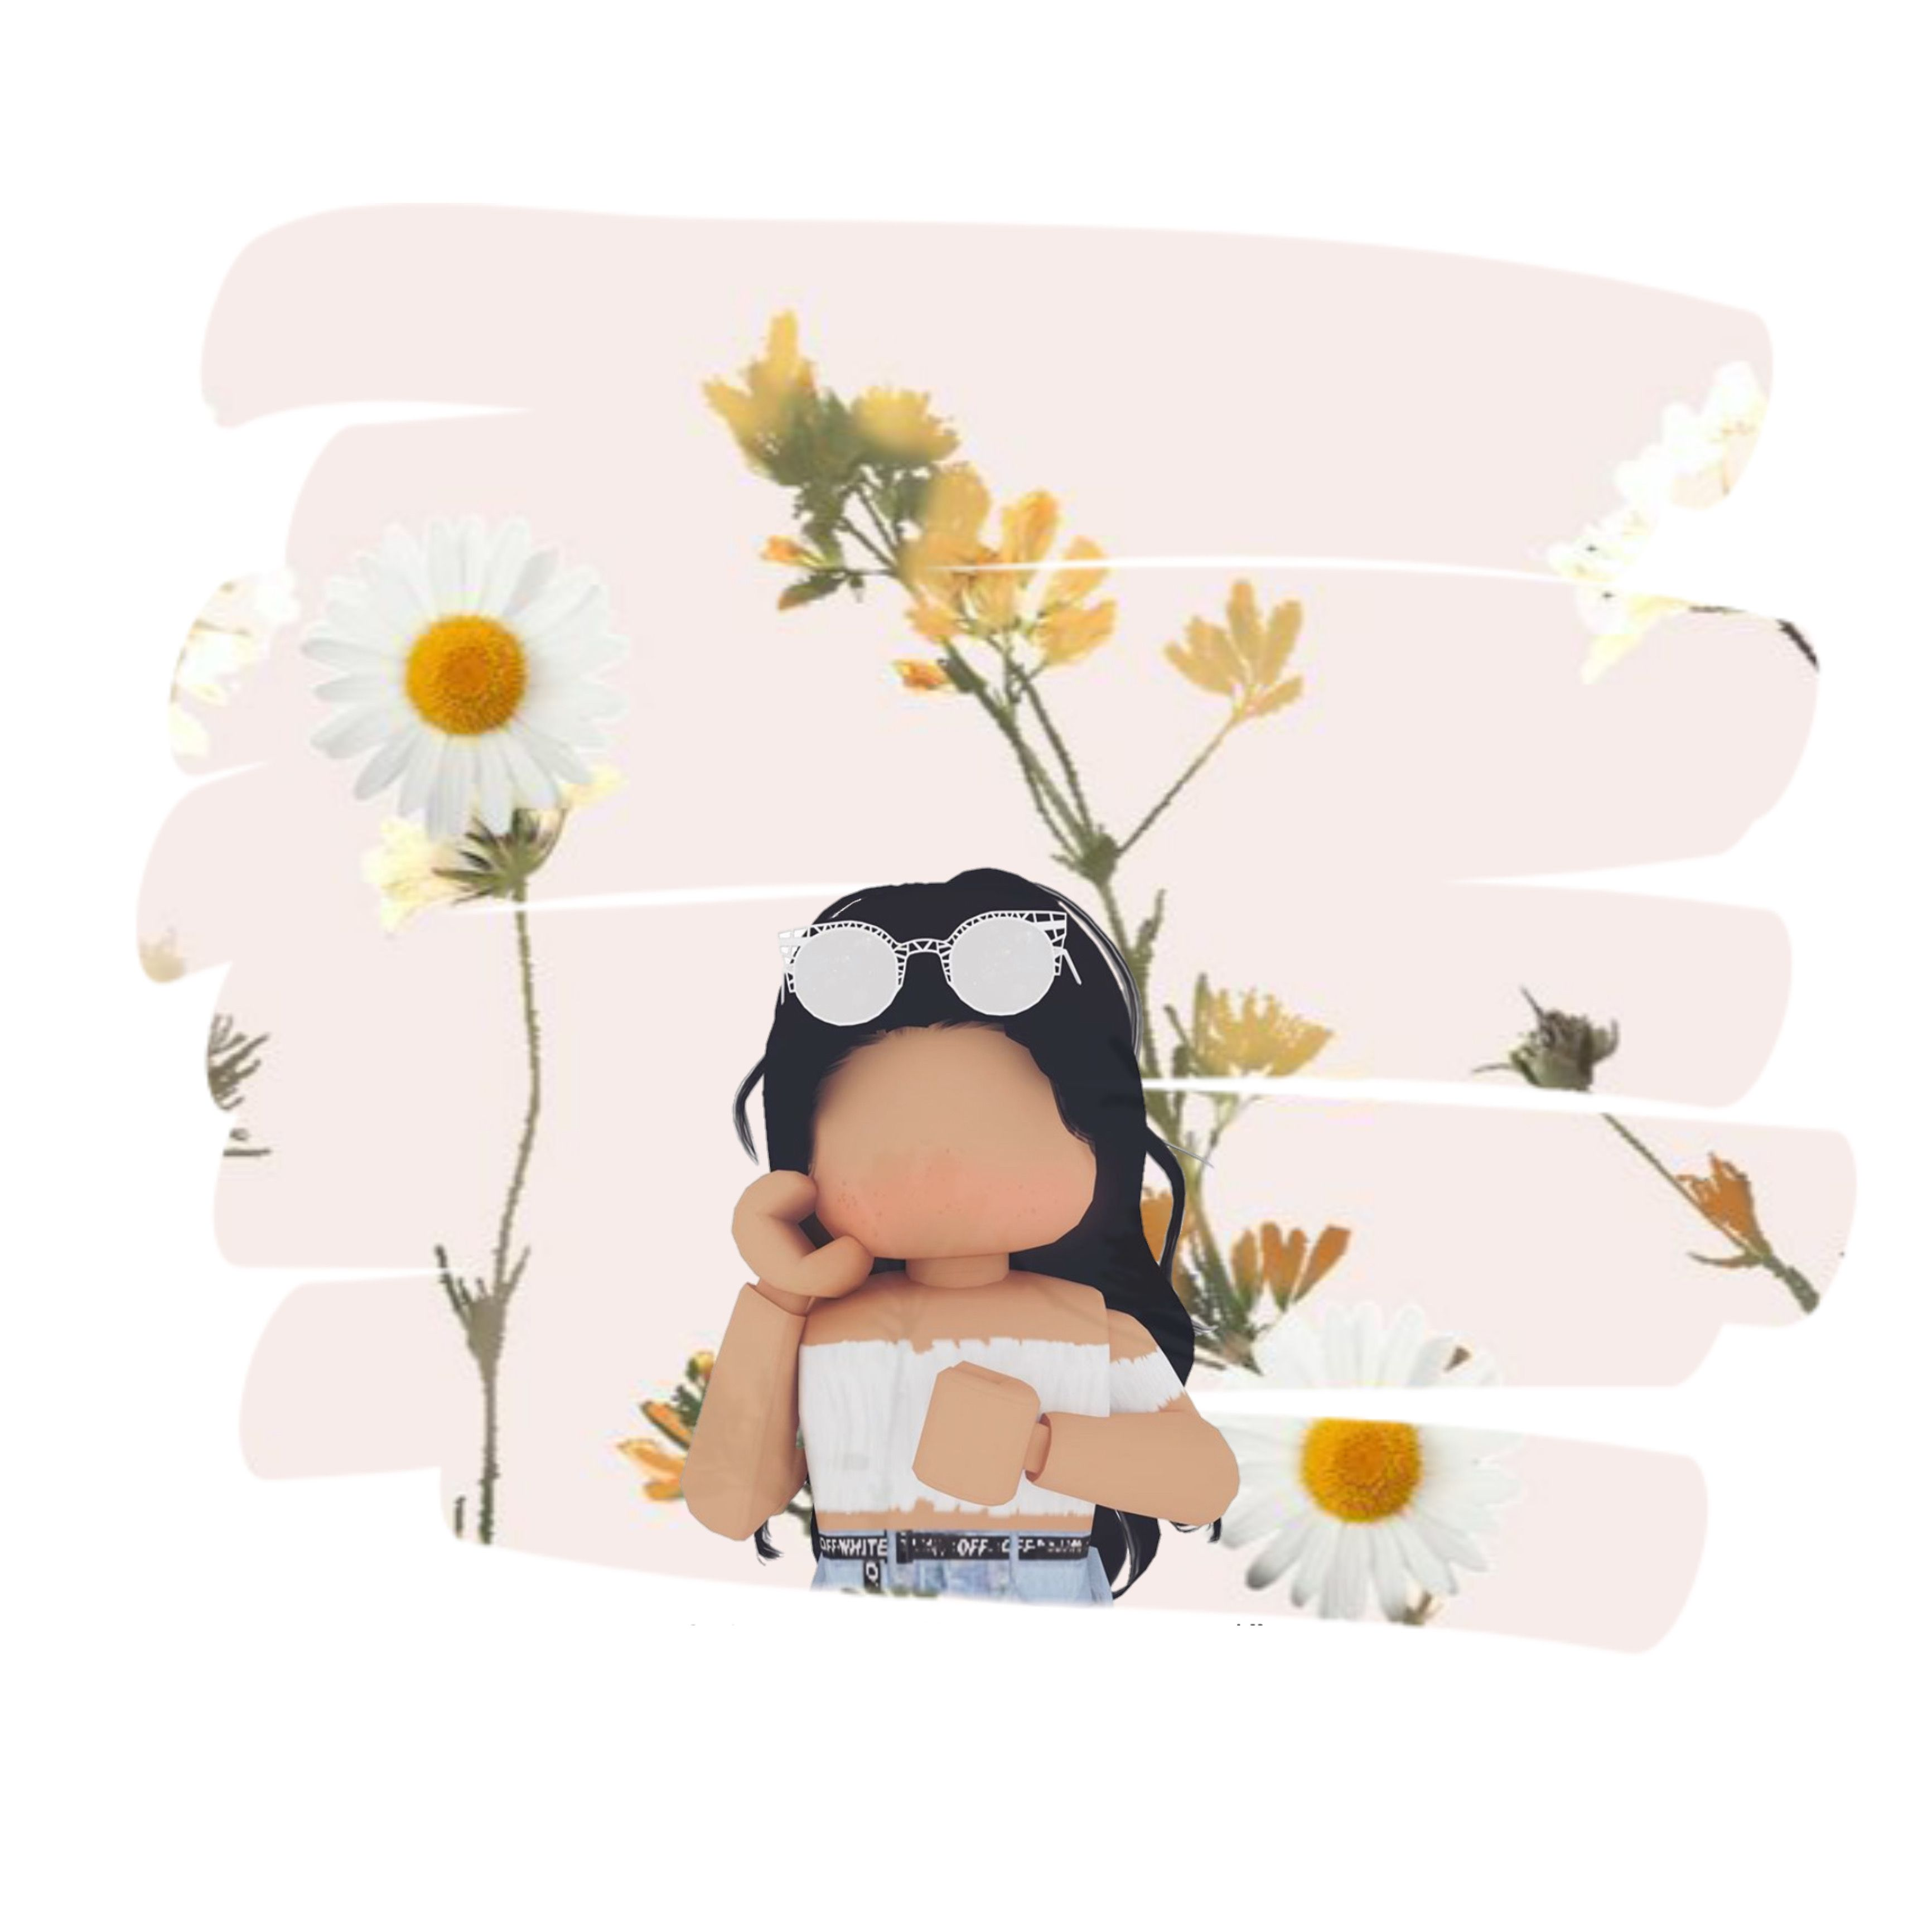 Pin By Panditaaaa08 On Roblox Pictures In 2020 Cute Tumblr Wallpaper Roblox Animation Roblox Pictures